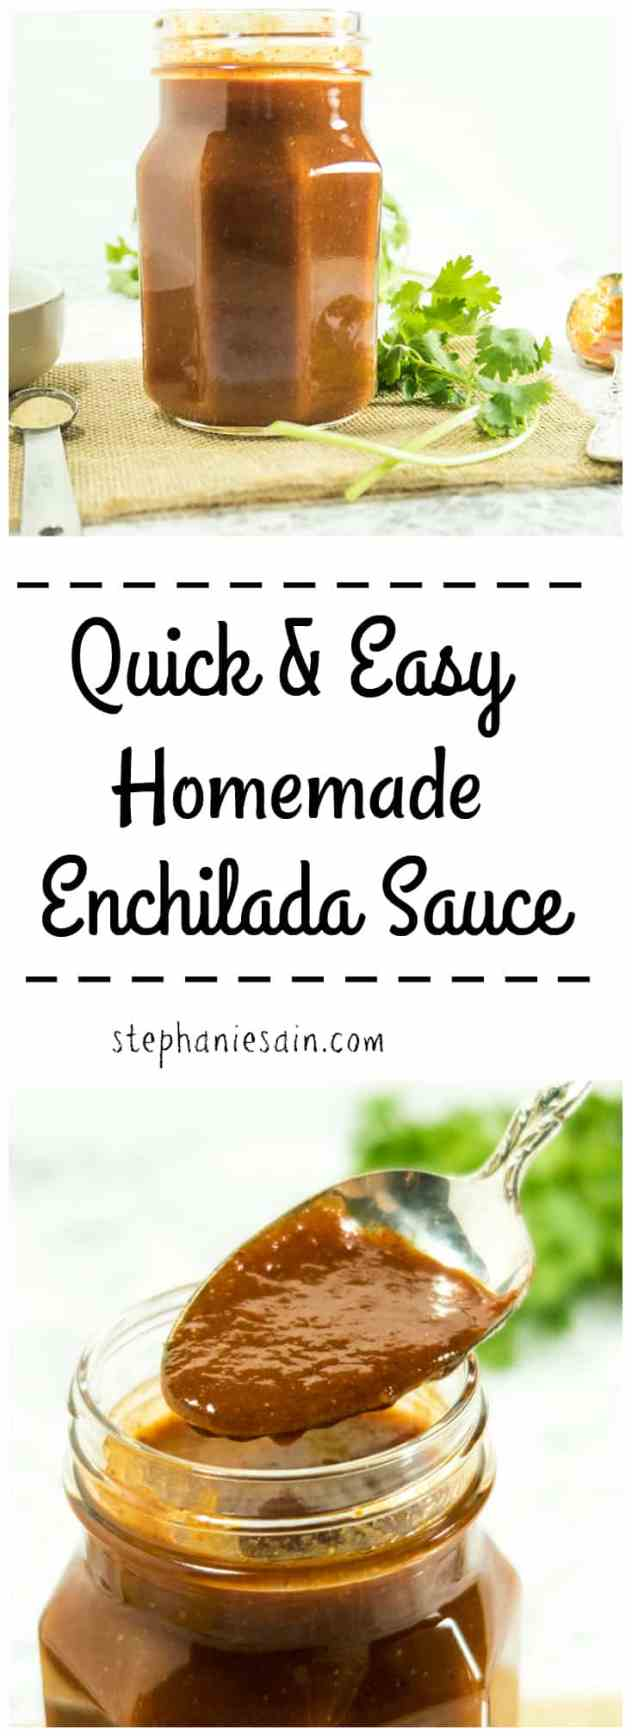 Quick & Easy Homemade Enchilada Sauce is so easy to prepare and tastes so much better than the store bought stuff. Great with all your favorite Mexican recipes. Gluten free & Vegetarian.